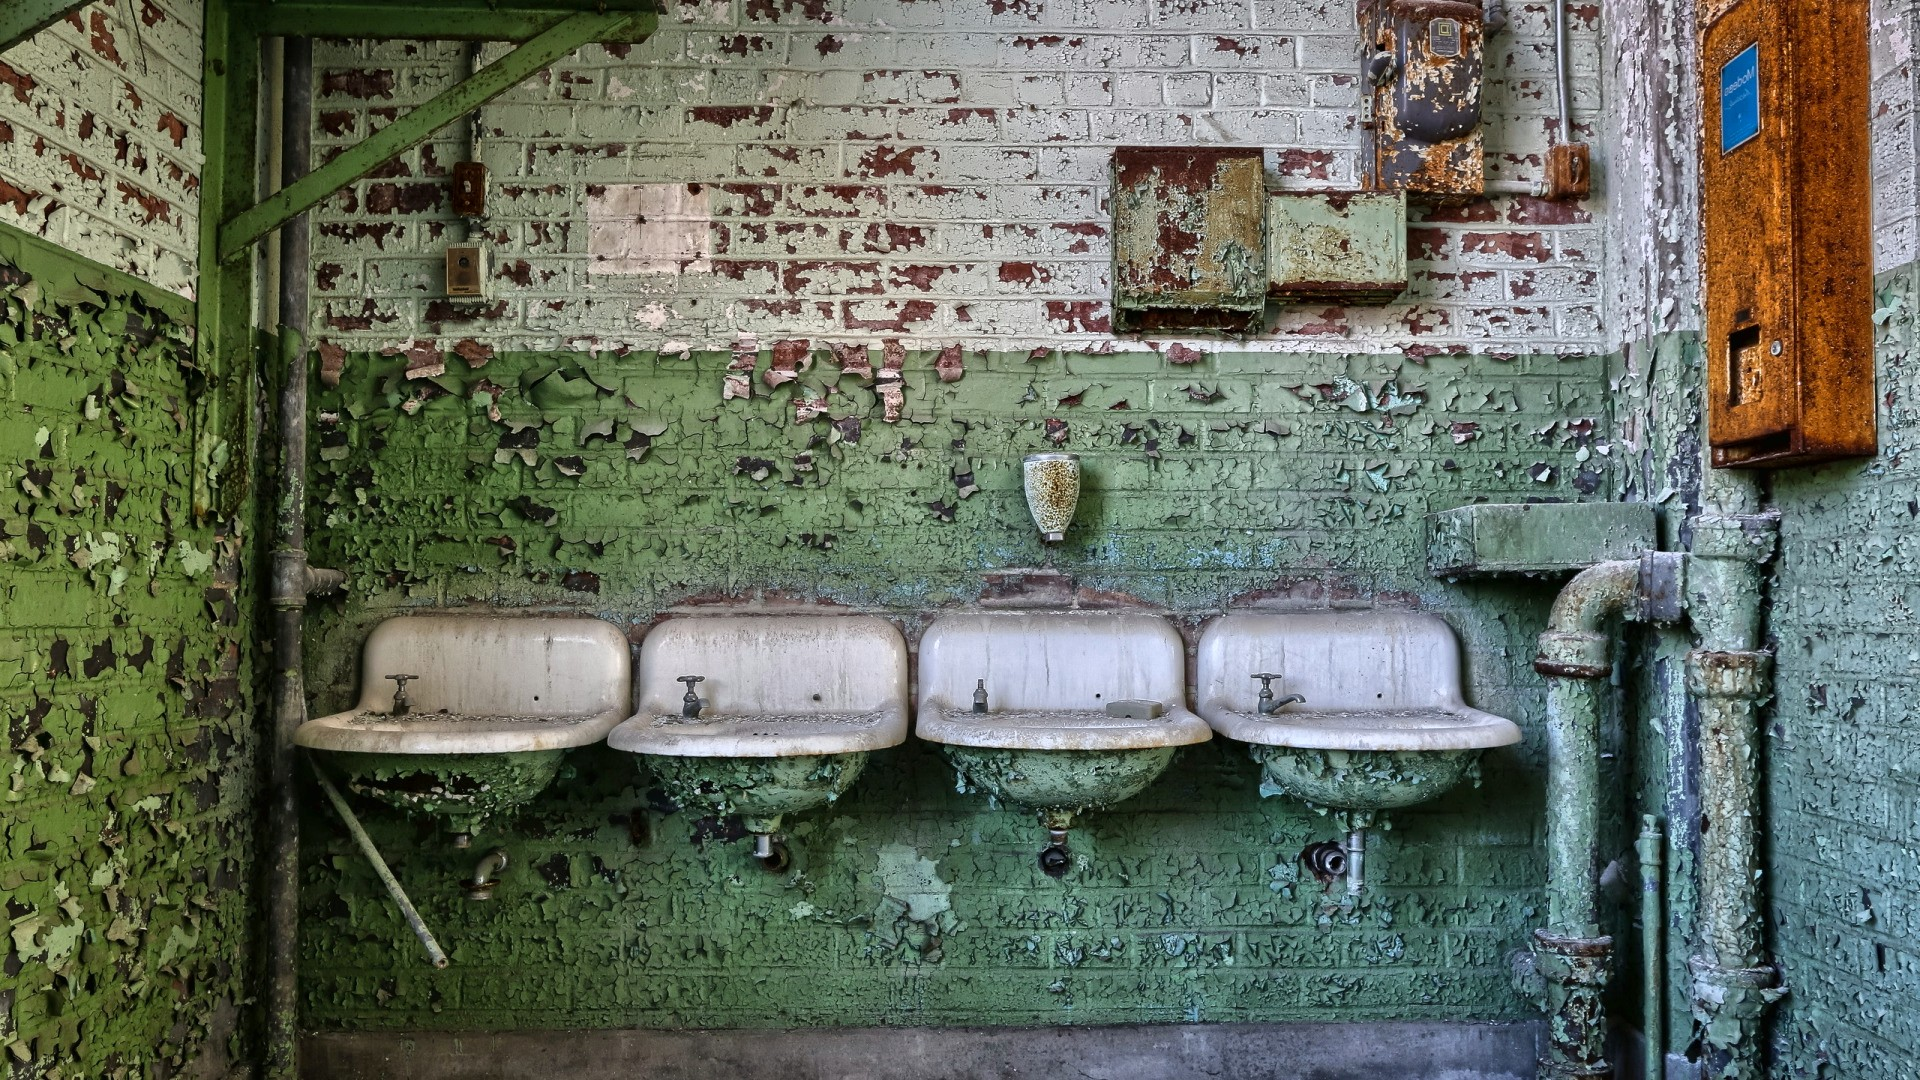 picture: washbasins, pipes, background (image)